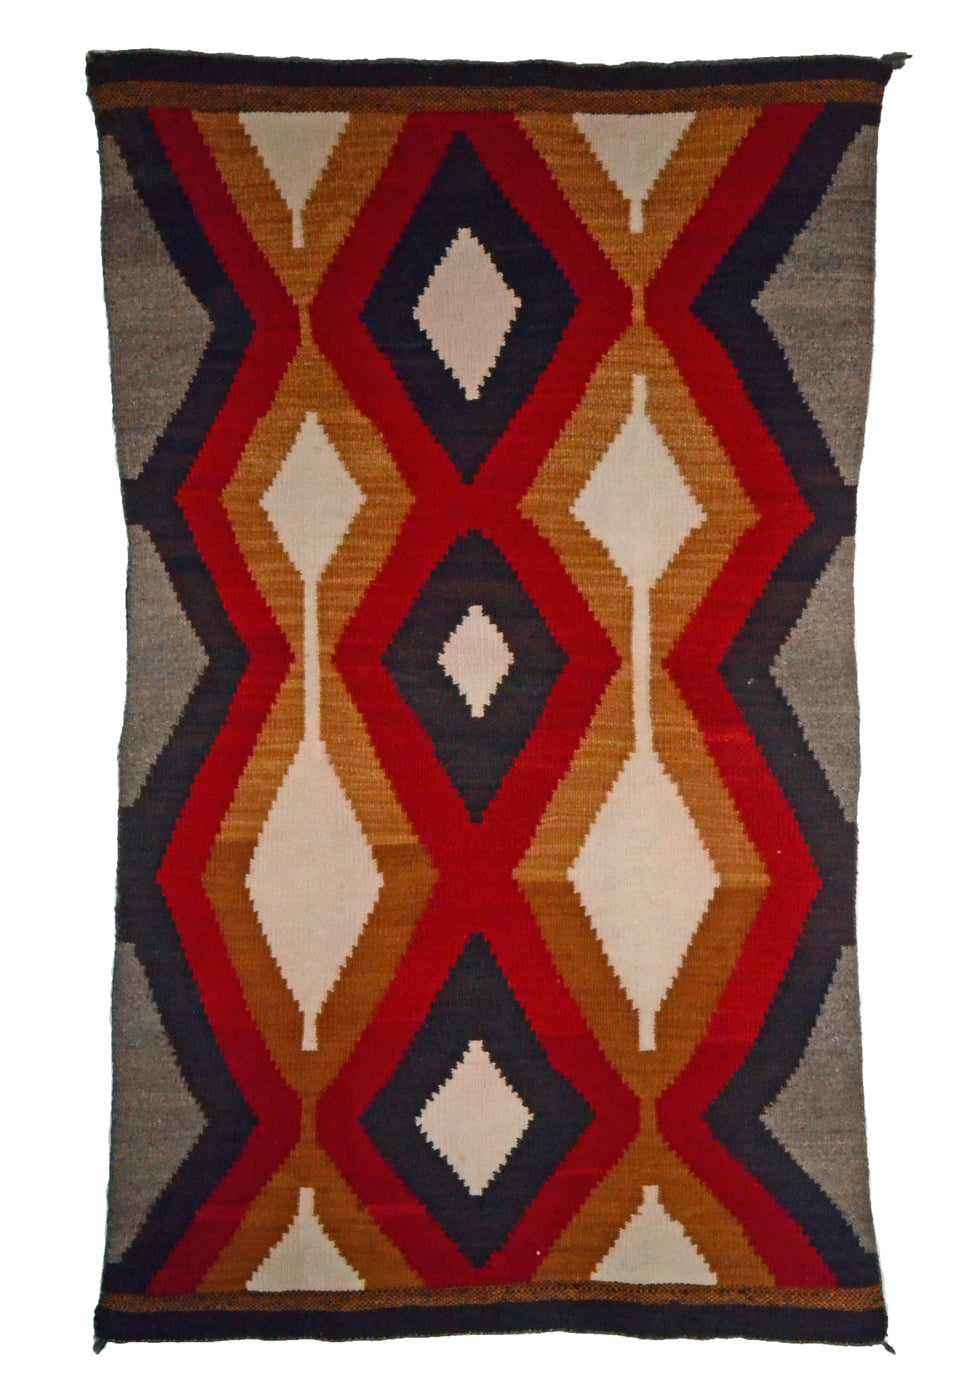 Antique Navajo rug for sale.